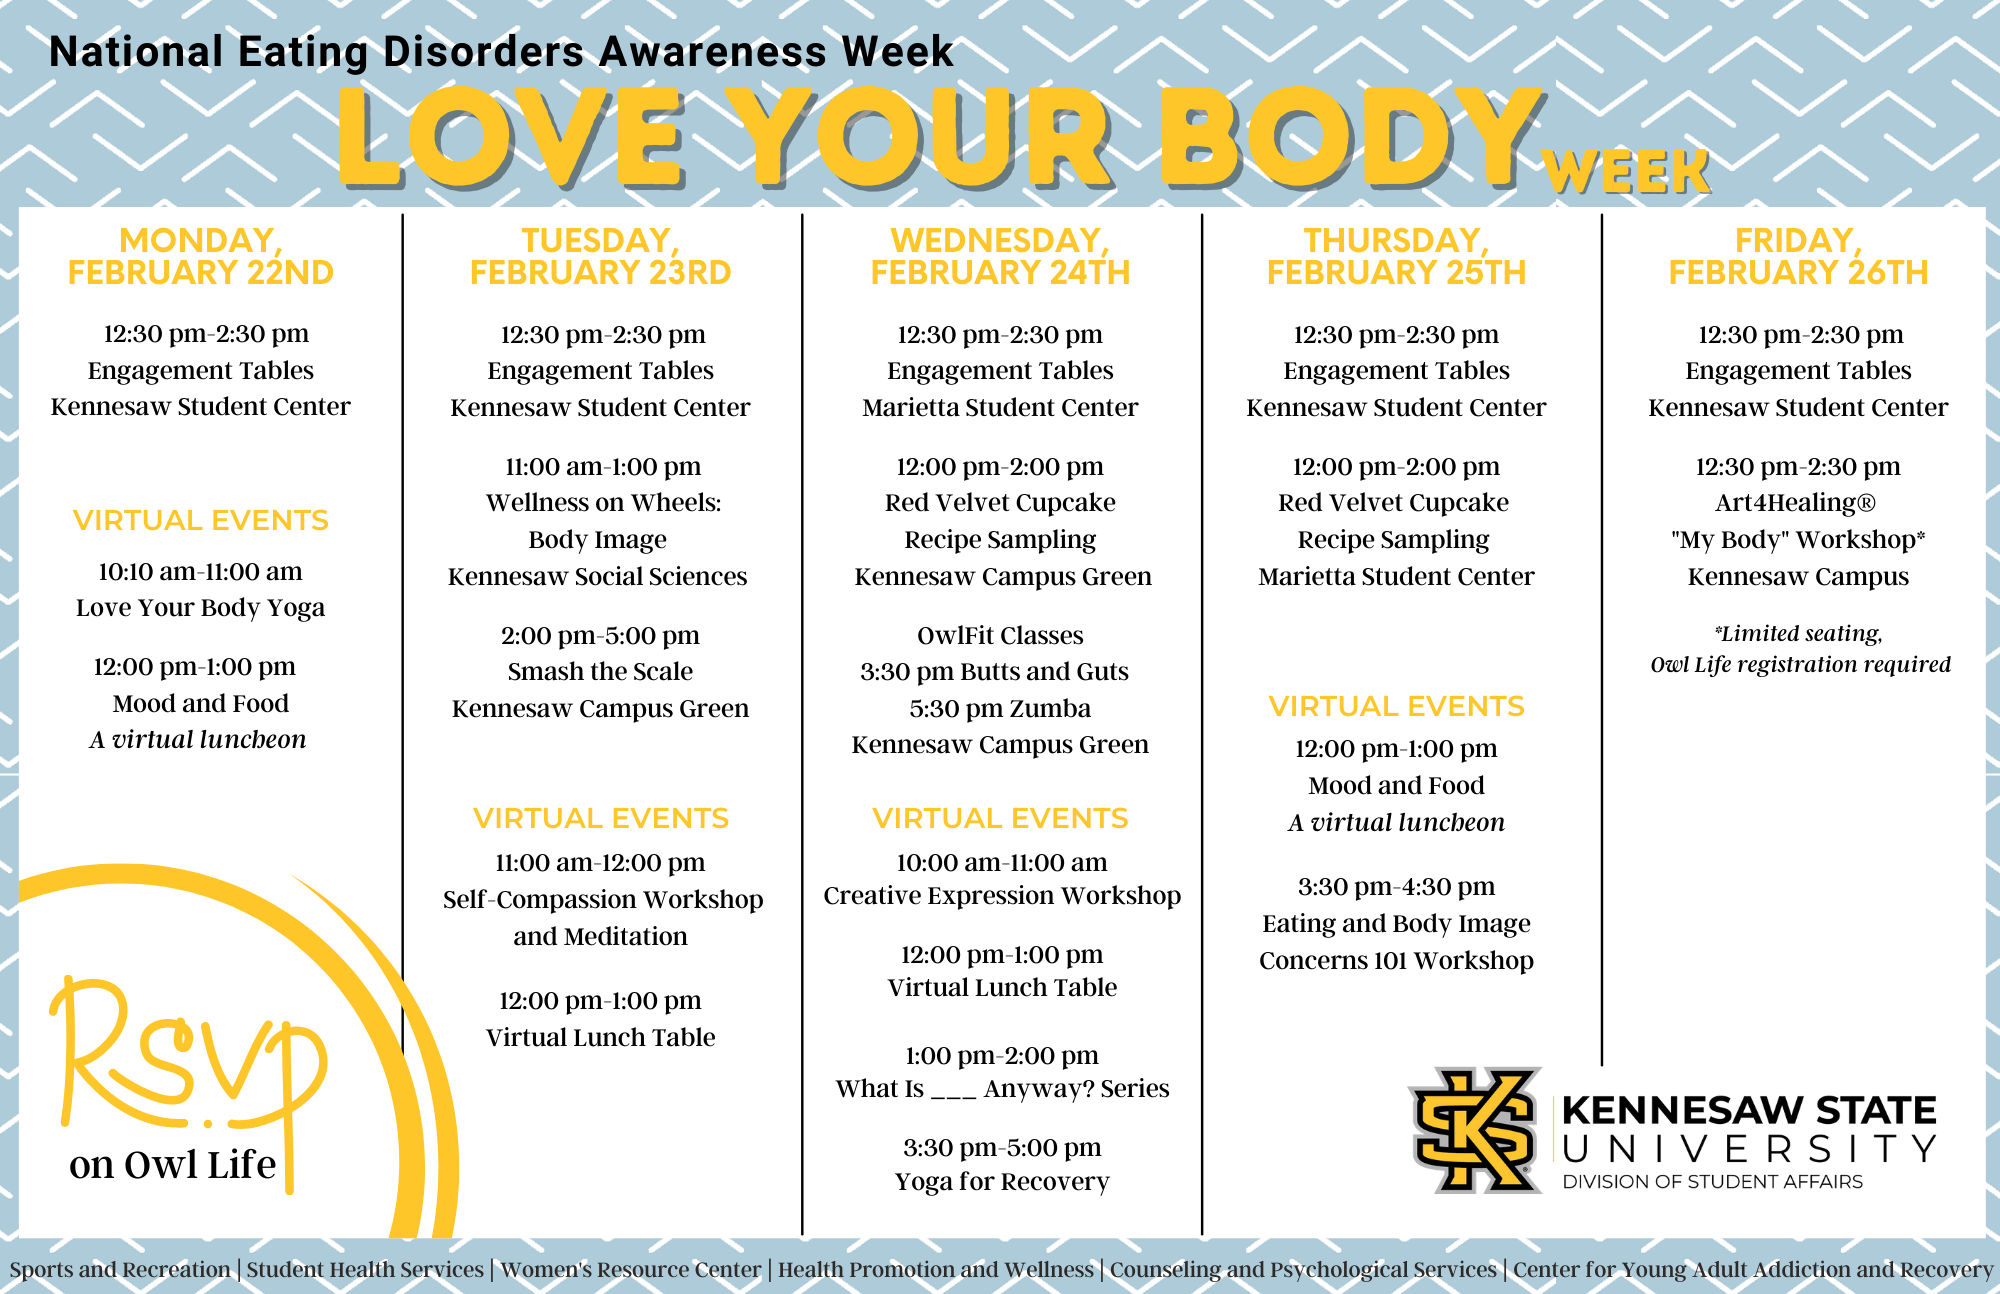 Love Your Body week image schedule of events